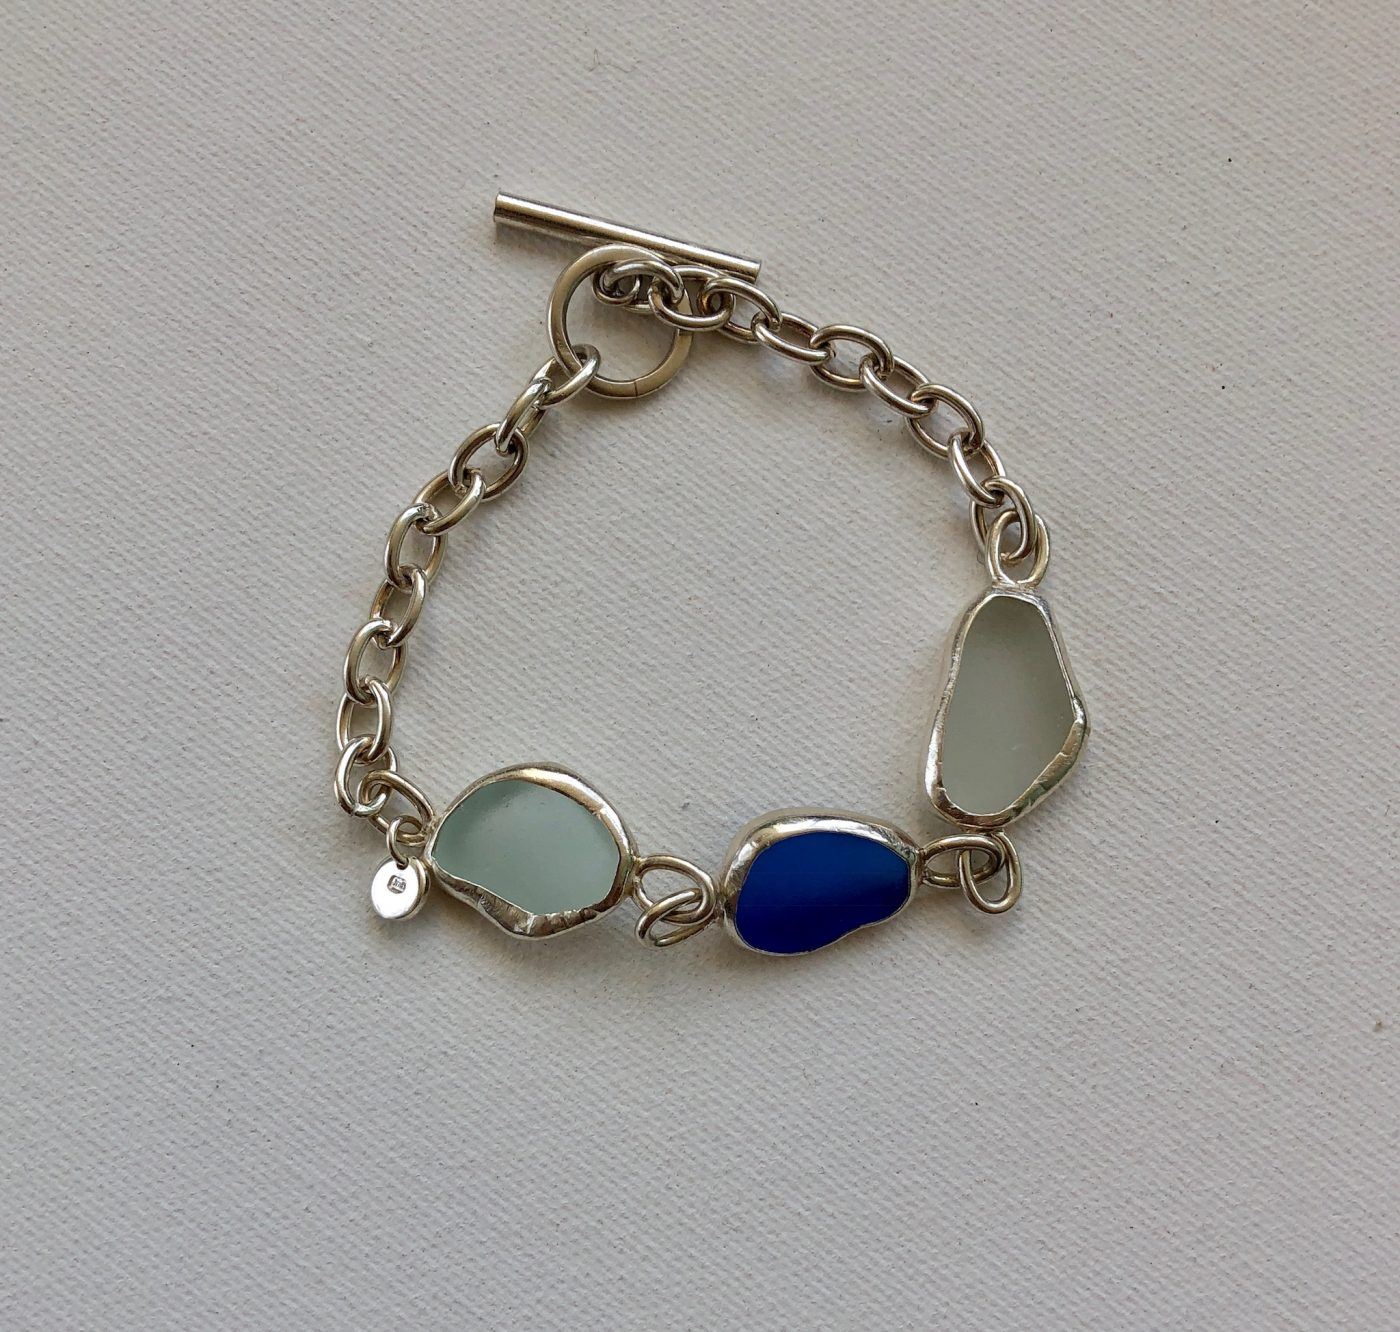 c2037db79e008 White and Blue Sea Glass Bracelet